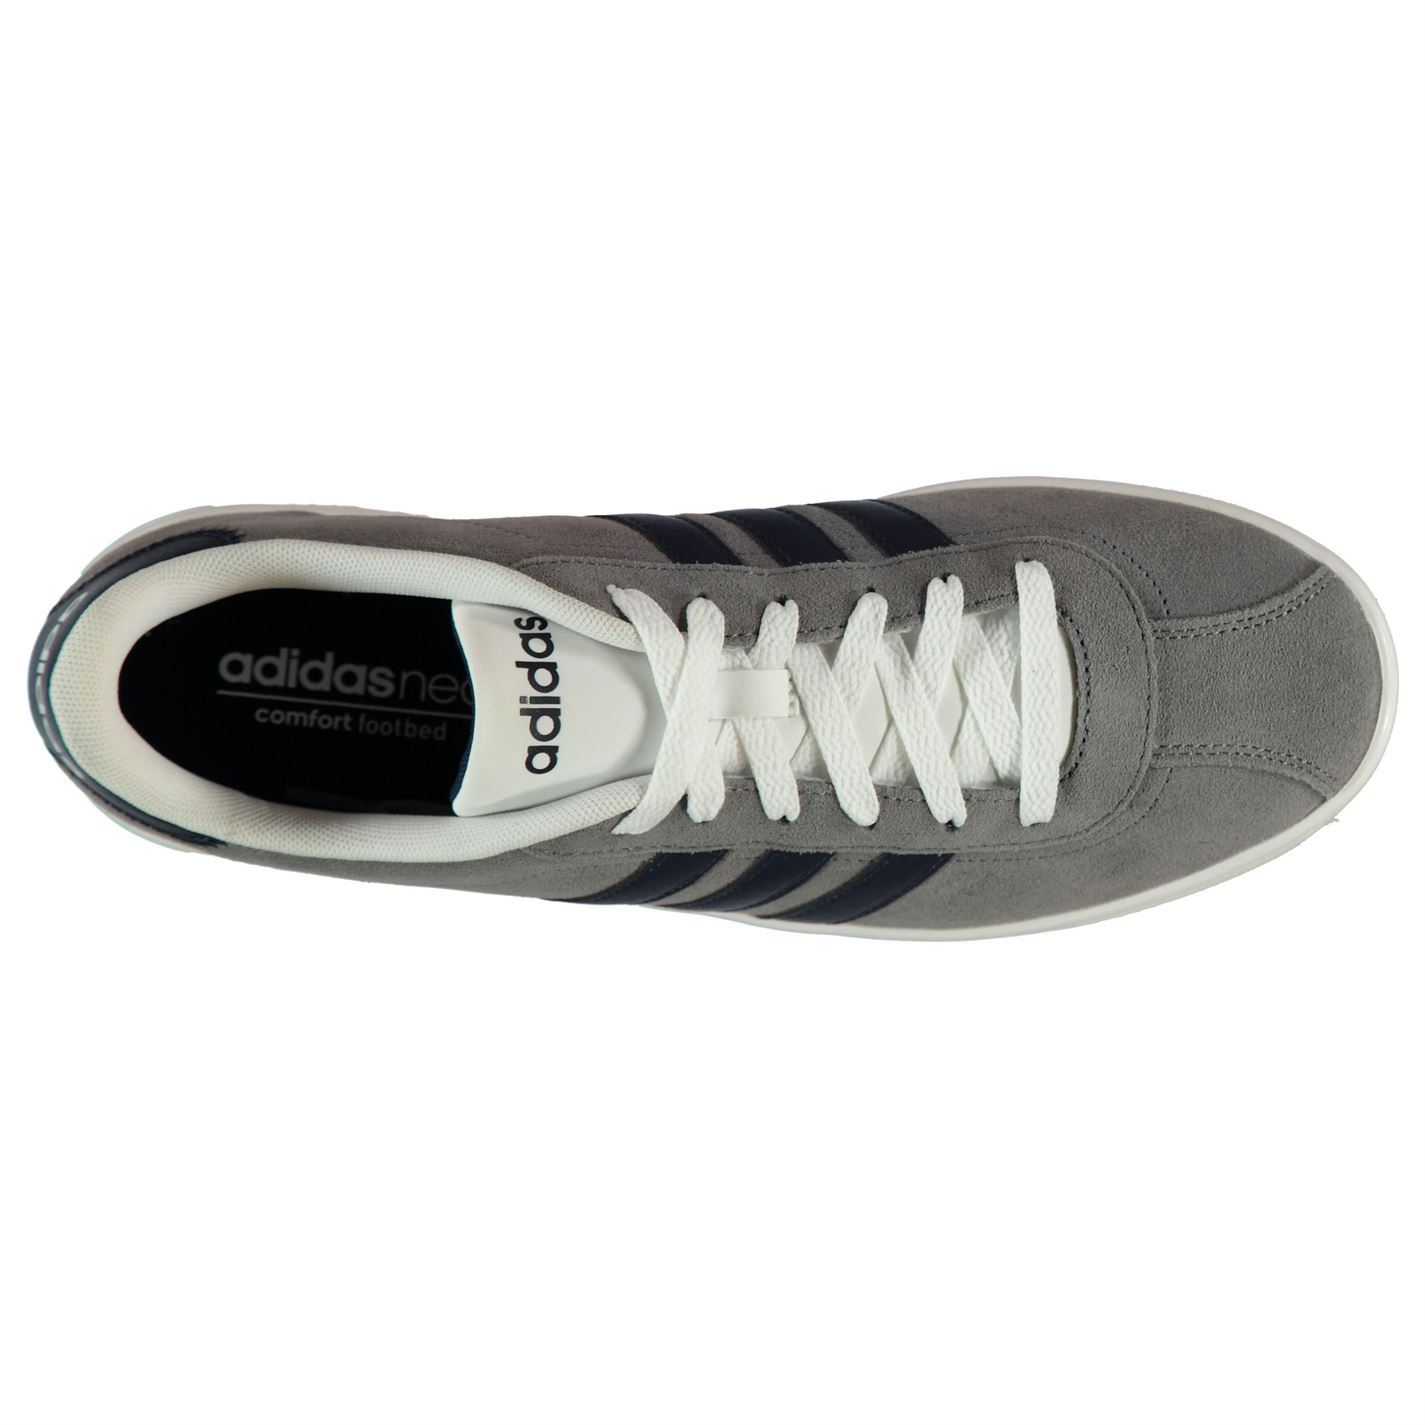 5867b41d4 ... Adidas VL Neo Court Suede Trainers Mens Grey Navy White Casual Sneakers  Shoes